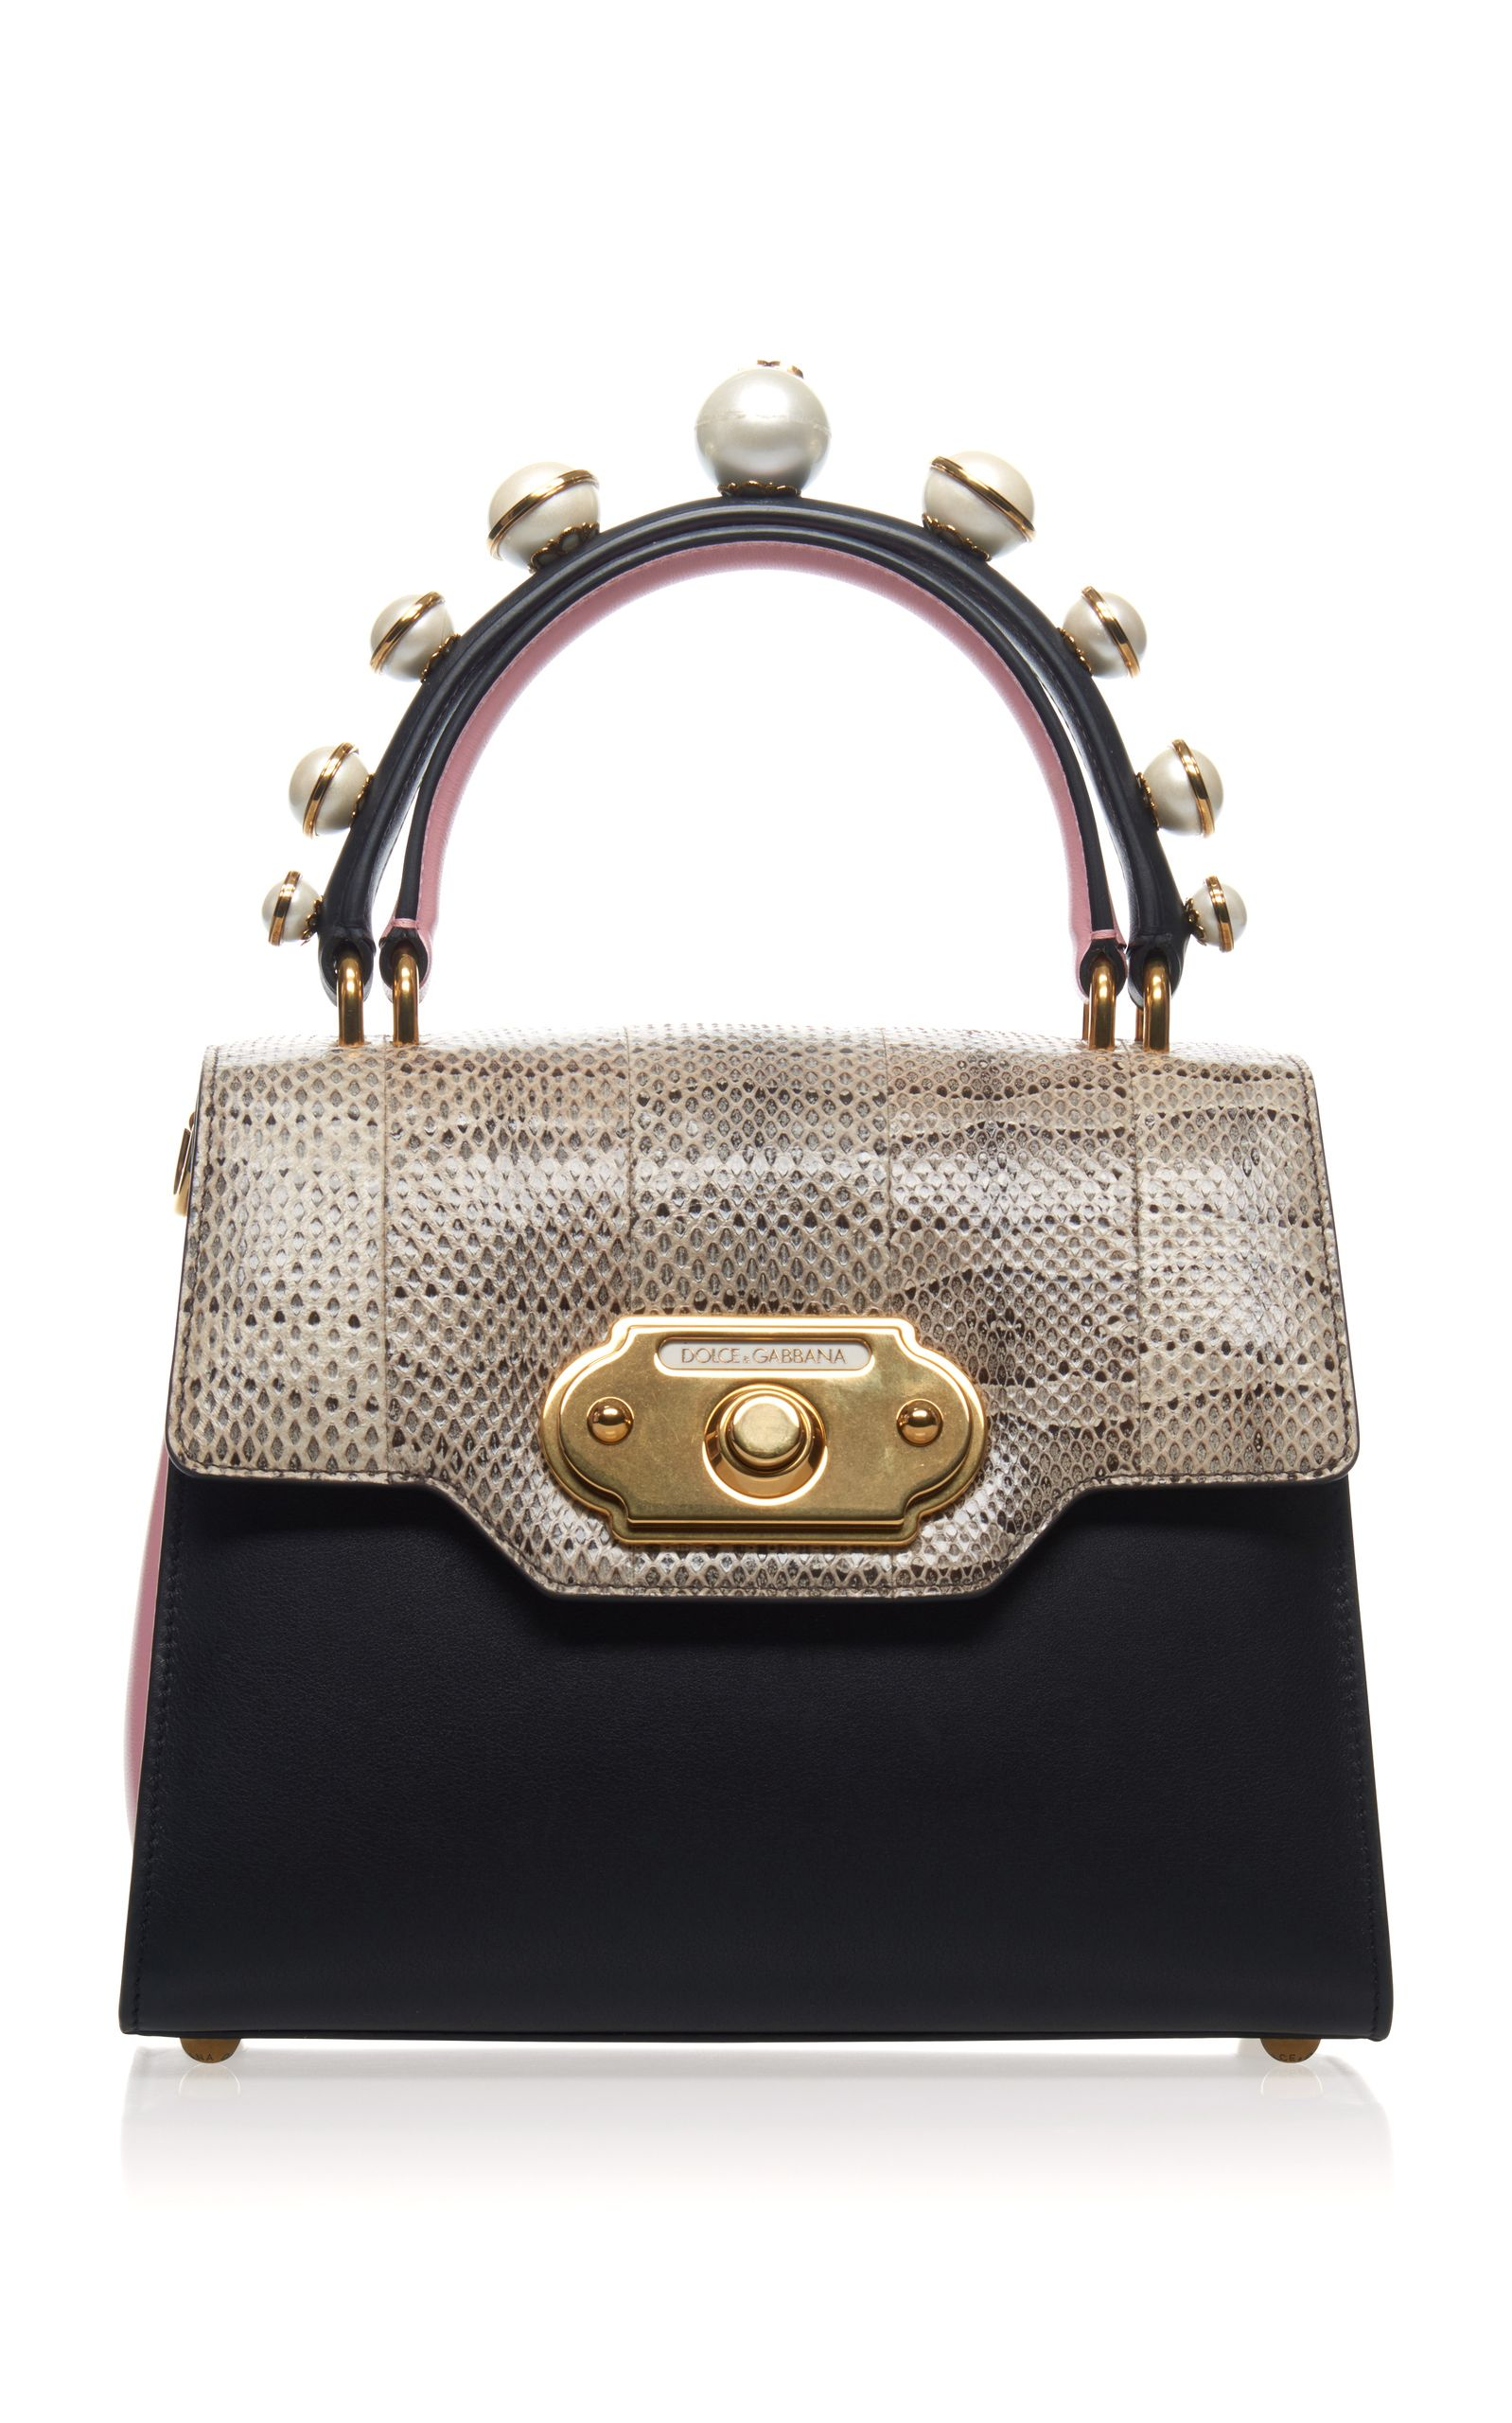 Dolce Gabbana Pearl Embellished Leather And Python Bag Dolcegabbana Bags Wallet Accessories